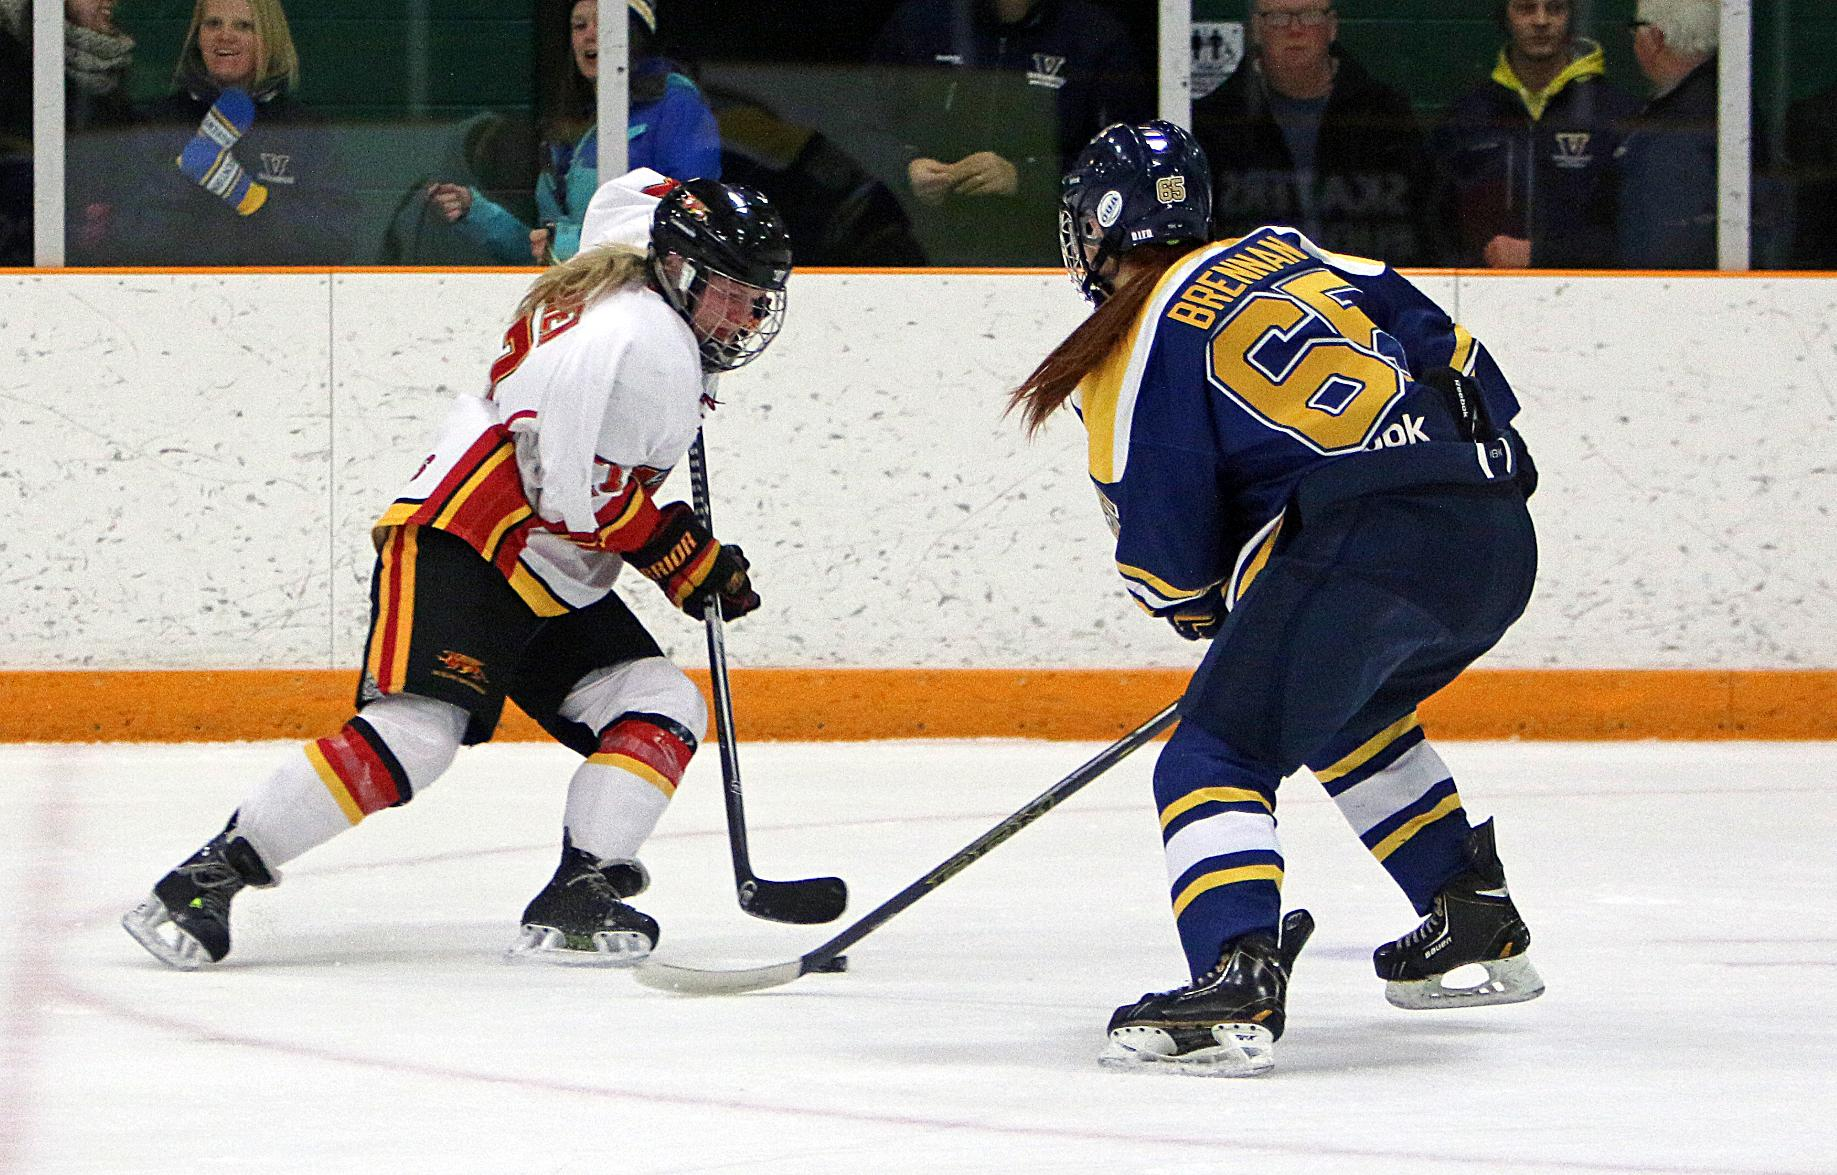 HKYF | Waterloo s'impose de justesse face aux Vees